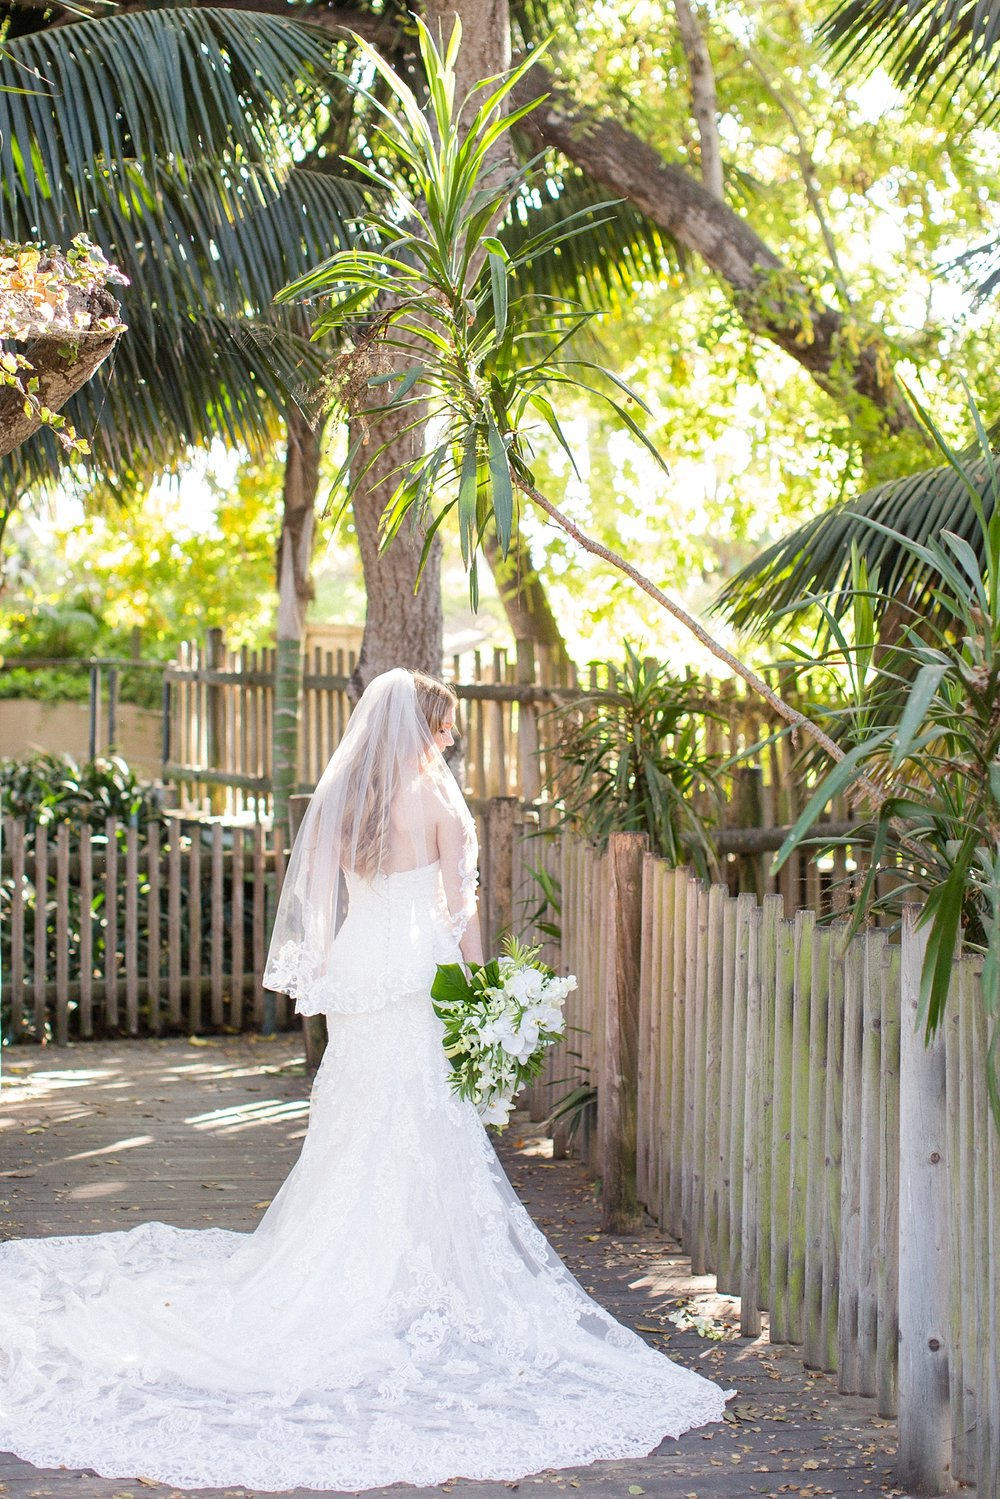 thevondys.com | Santa Barbara Zoo | Southern California Wedding Photographer | The Vondys